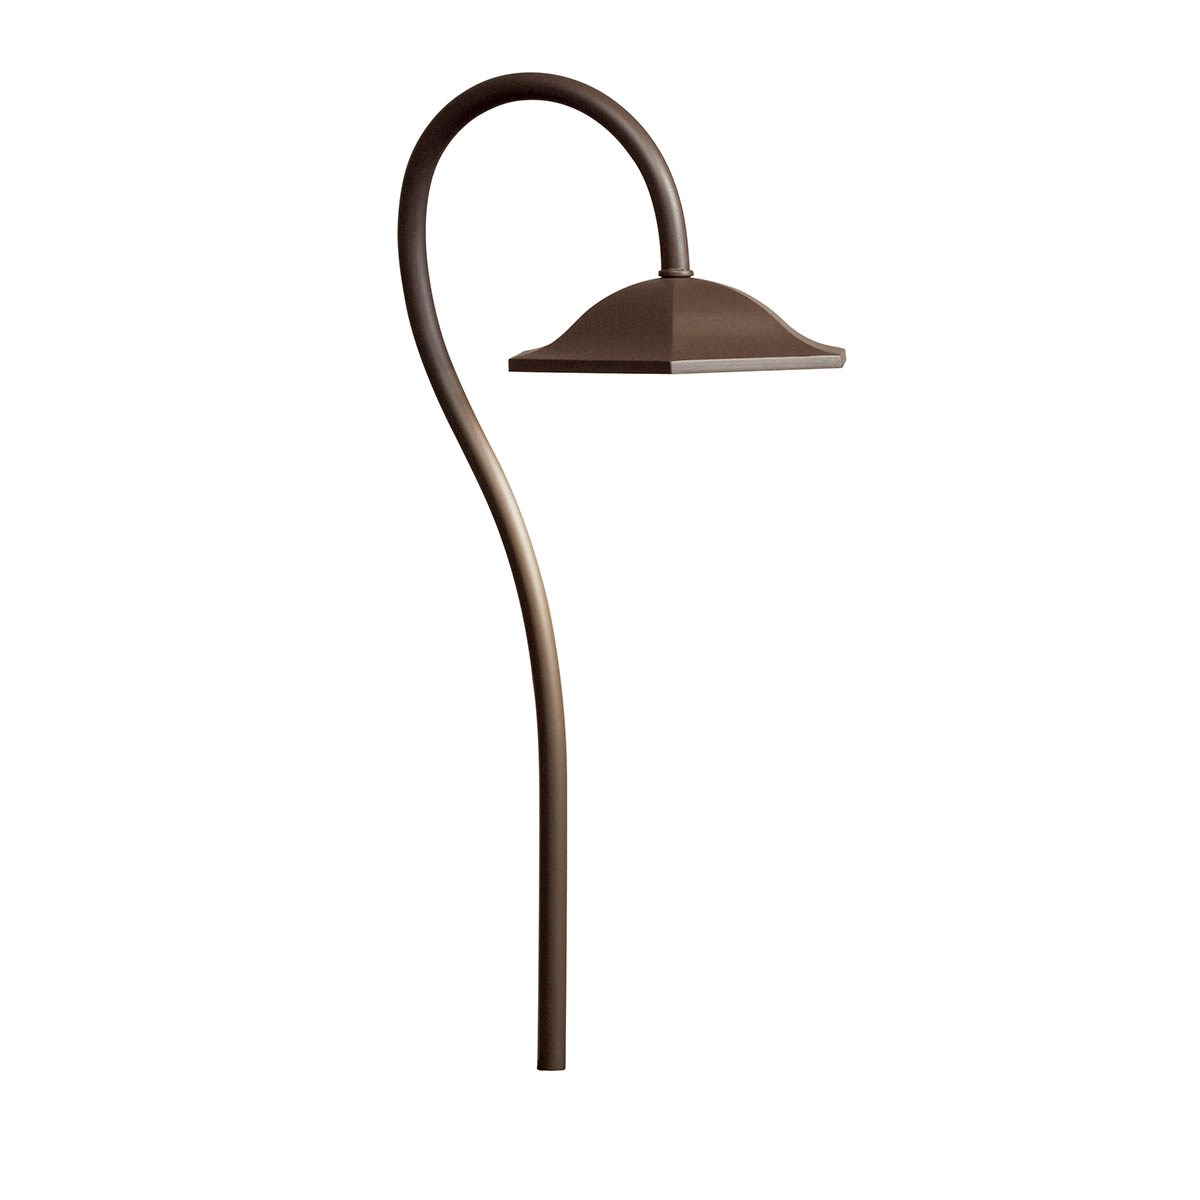 Shepherd's Crook 2700K LED Path Light Textured Architectural Bronze